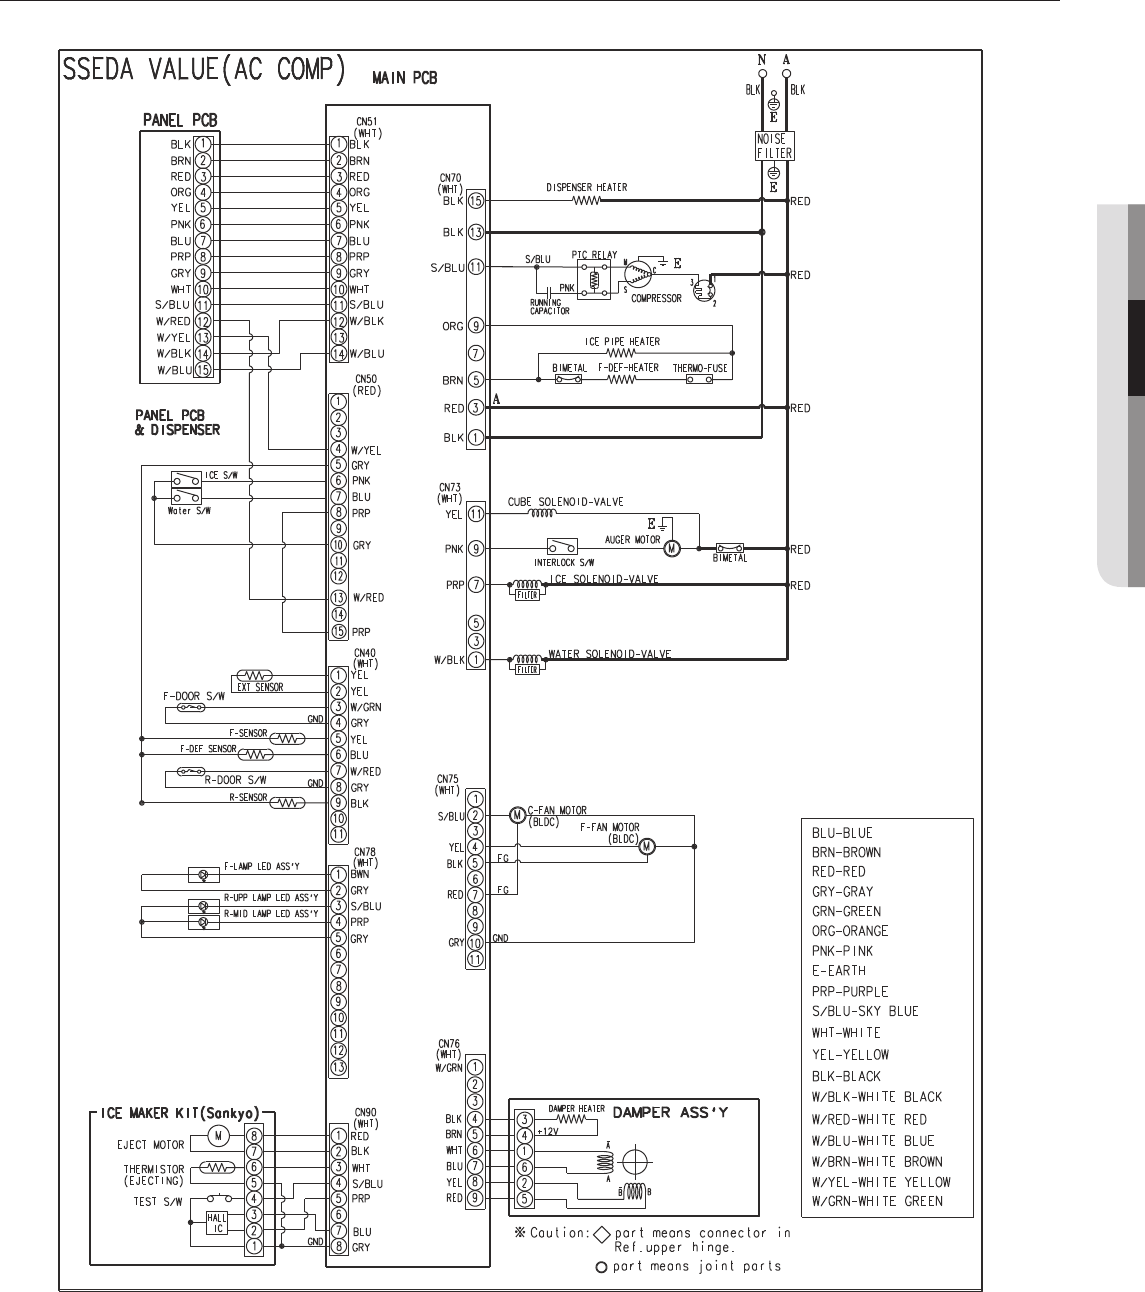 21aa6212 5c03 4539 ac02 99a0885d5c5e bg1f page 31 of samsung refrigerator rs261mdwp user guide wiring diagram for a refrigerator compressor at mifinder.co